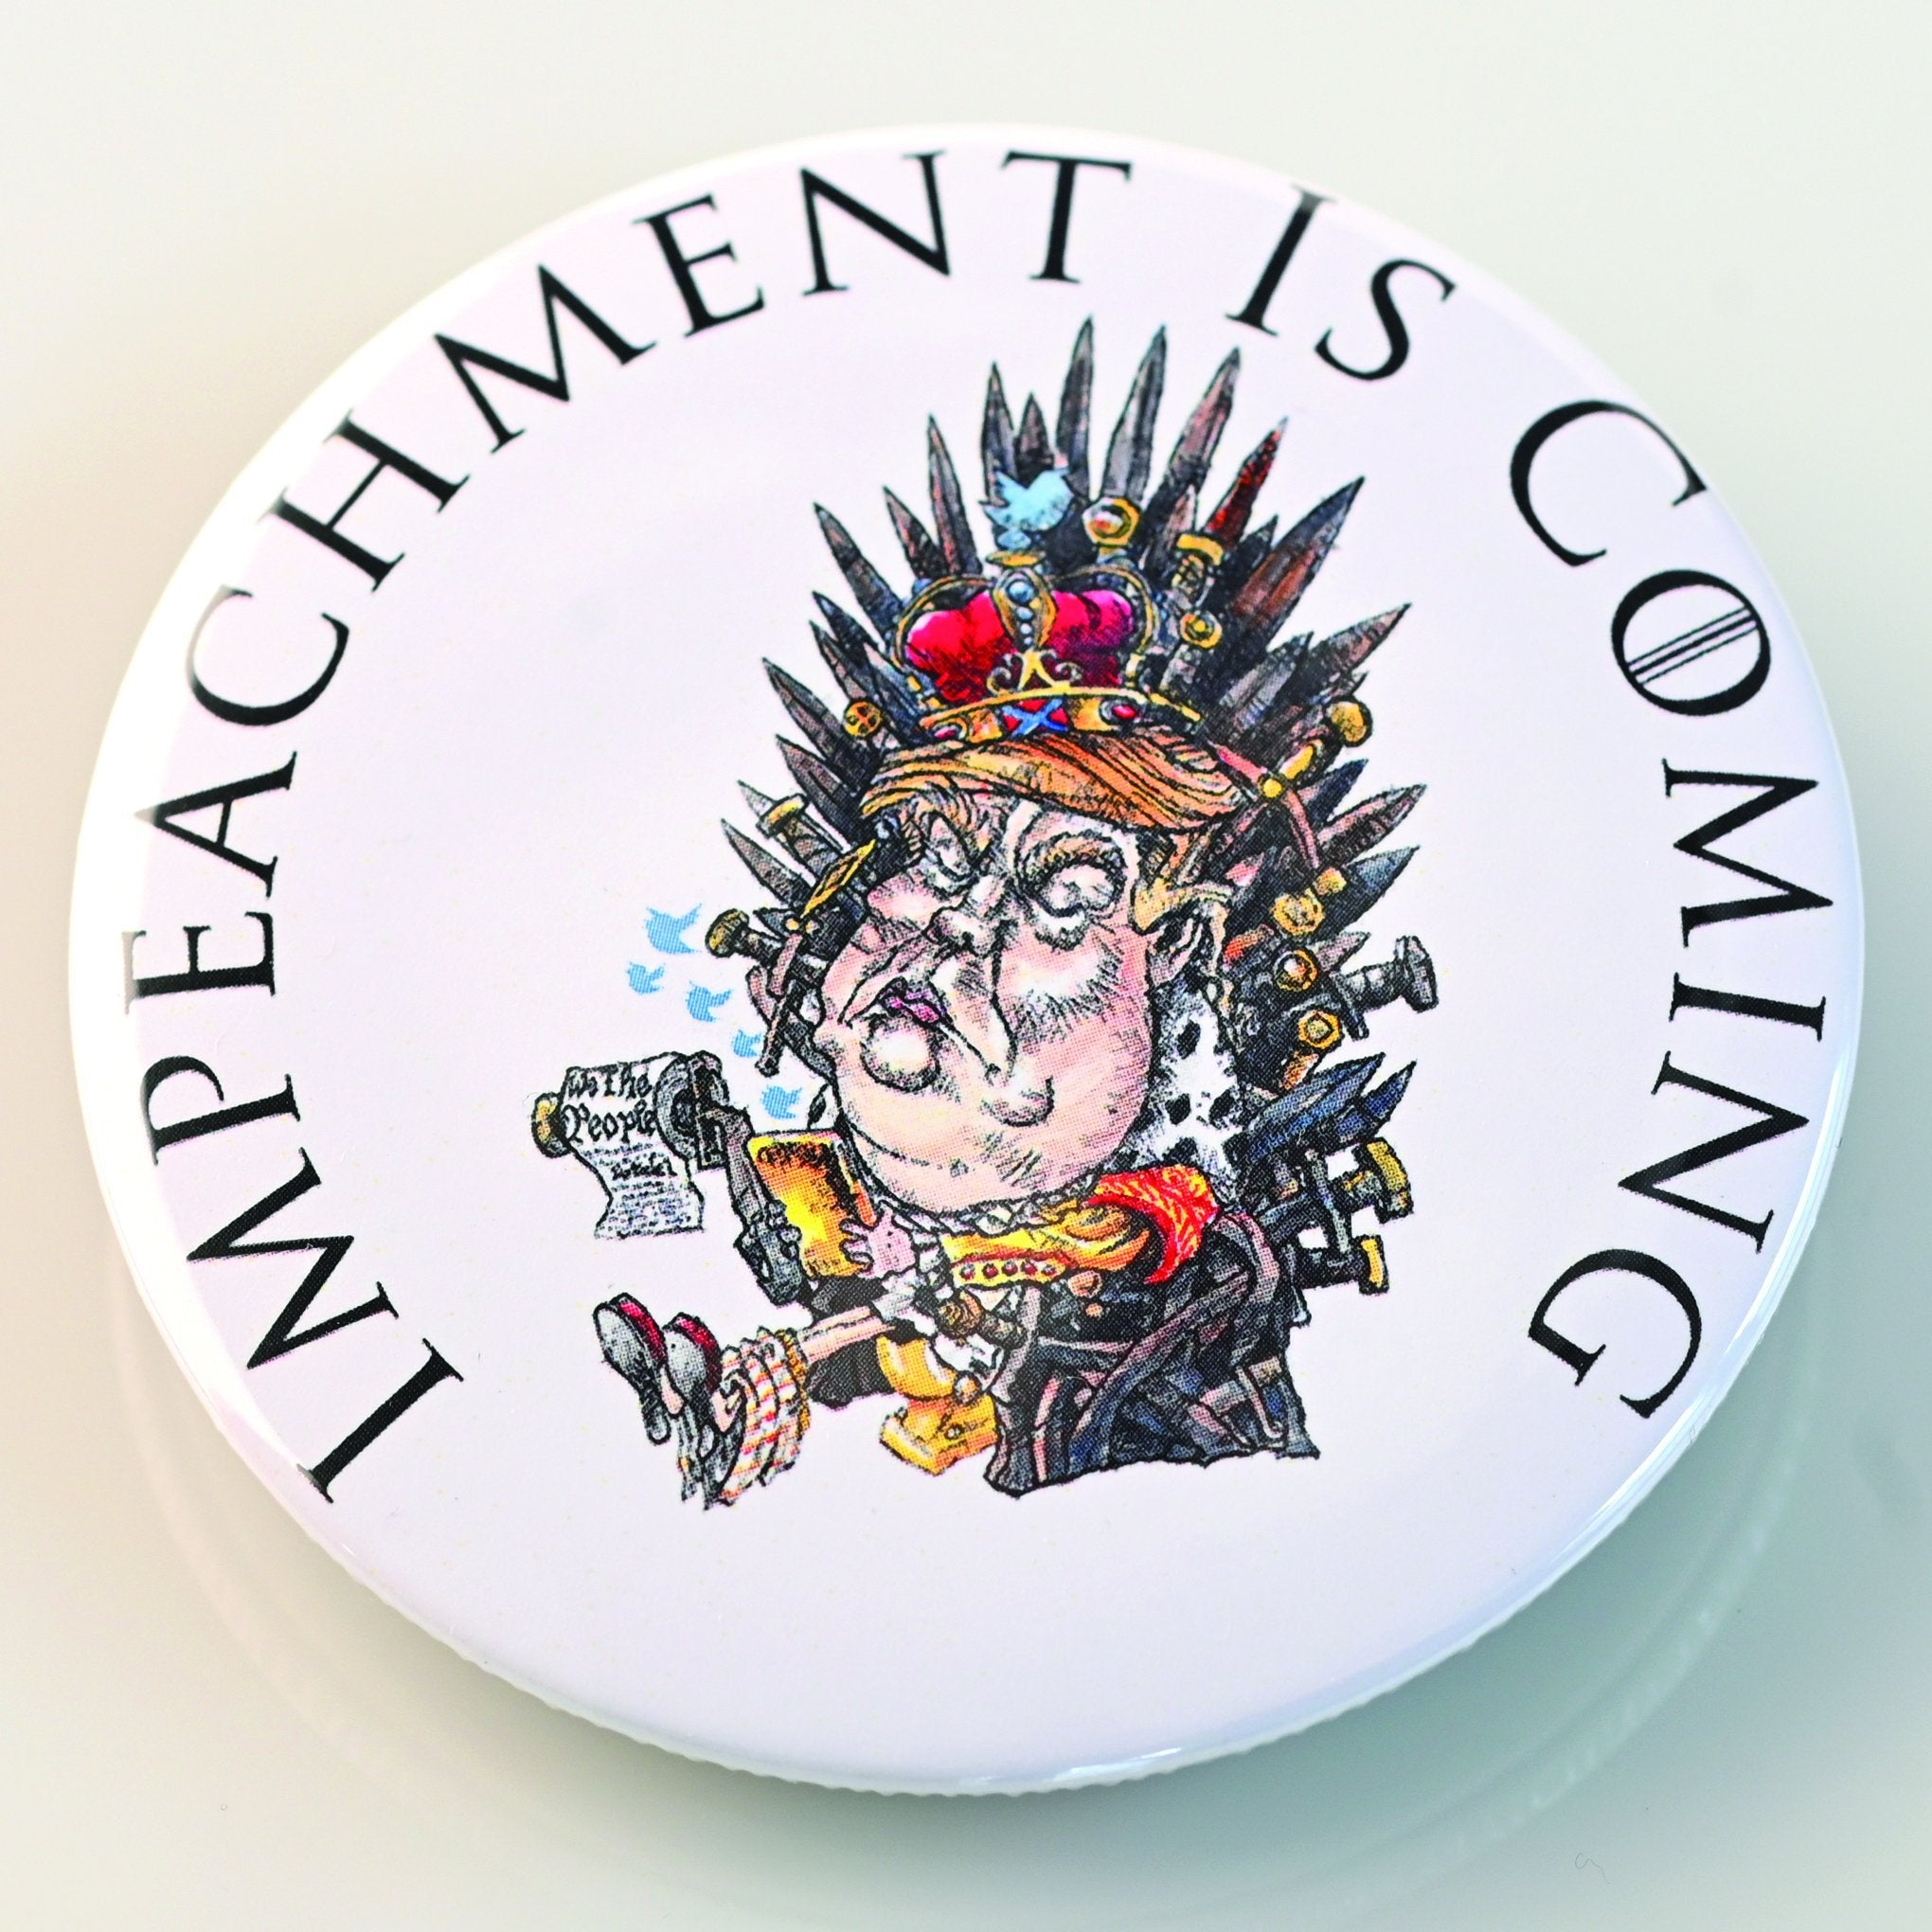 IMPEACHMENT IS COMING  BUTTON - PLAYING POLITICS